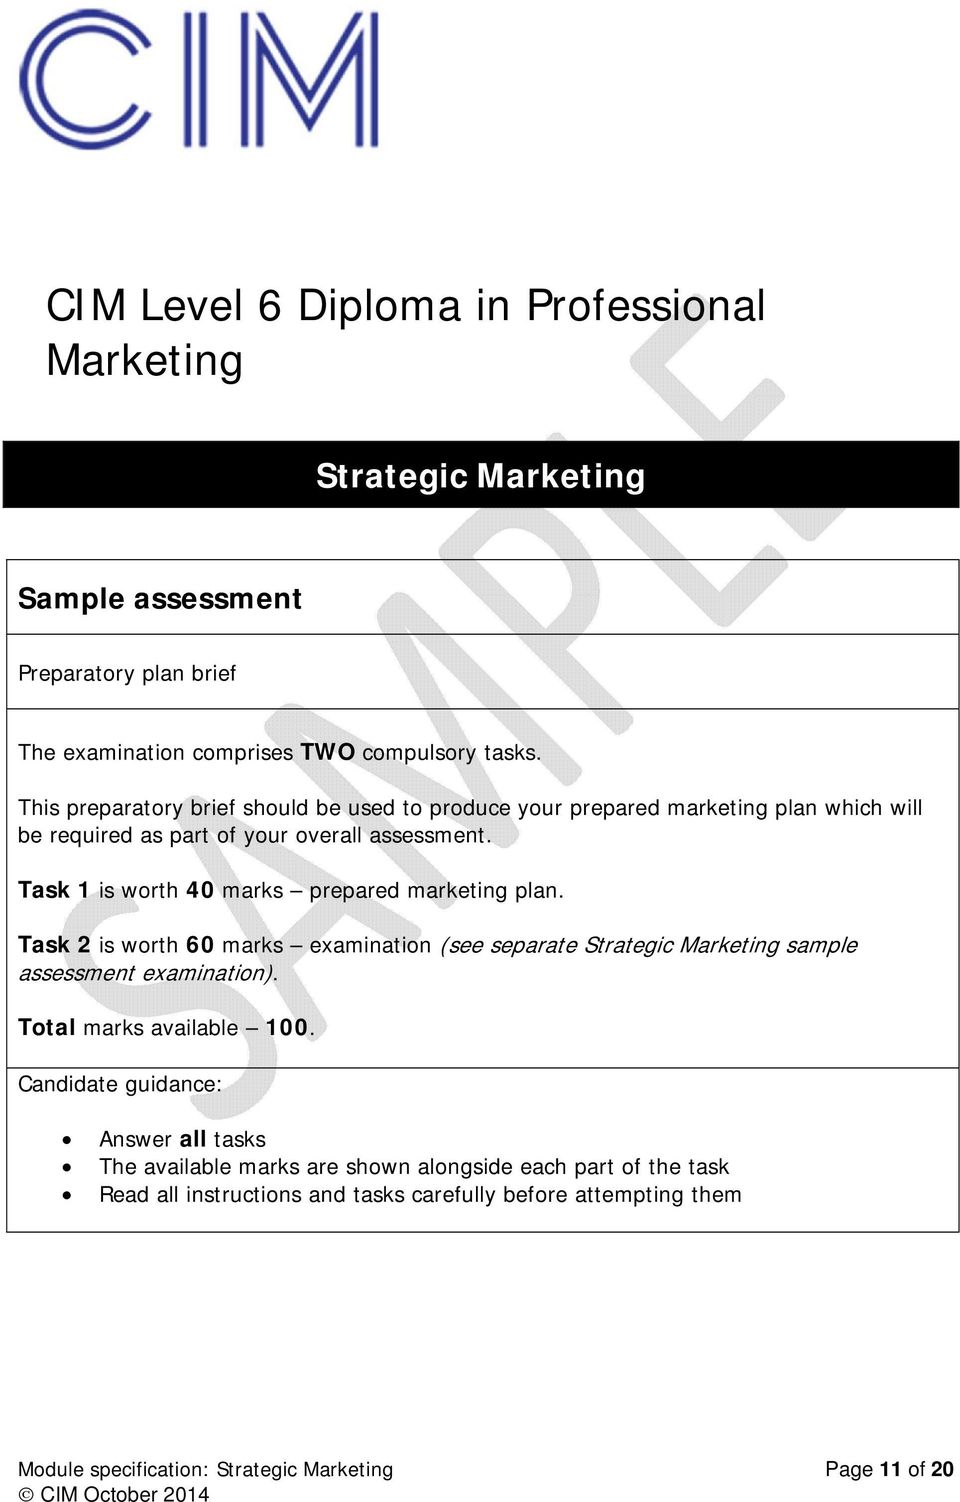 Task 1 is worth 40 marks prepared marketing plan. Task 2 is worth 60 marks examination (see separate Strategic Marketing sample assessment examination).